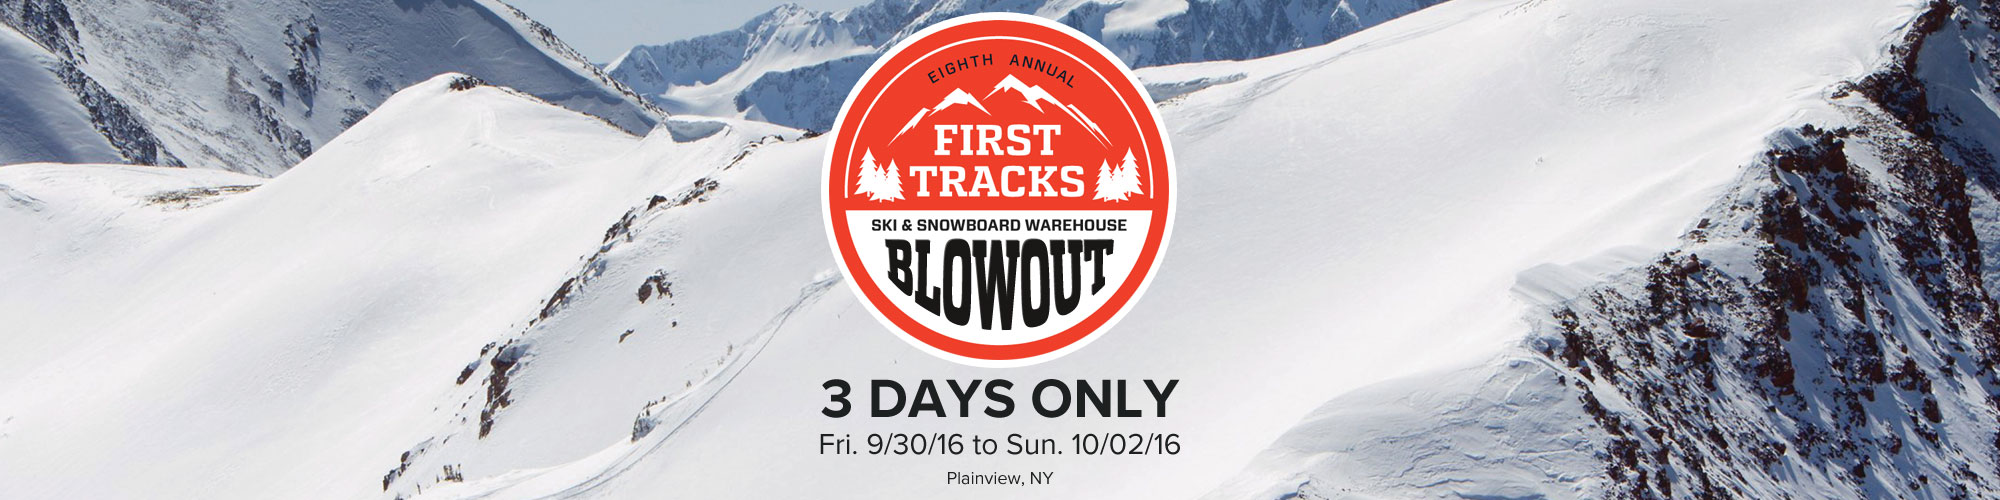 First Tracks Ski & Snowboard Blowout - Plainview, NY